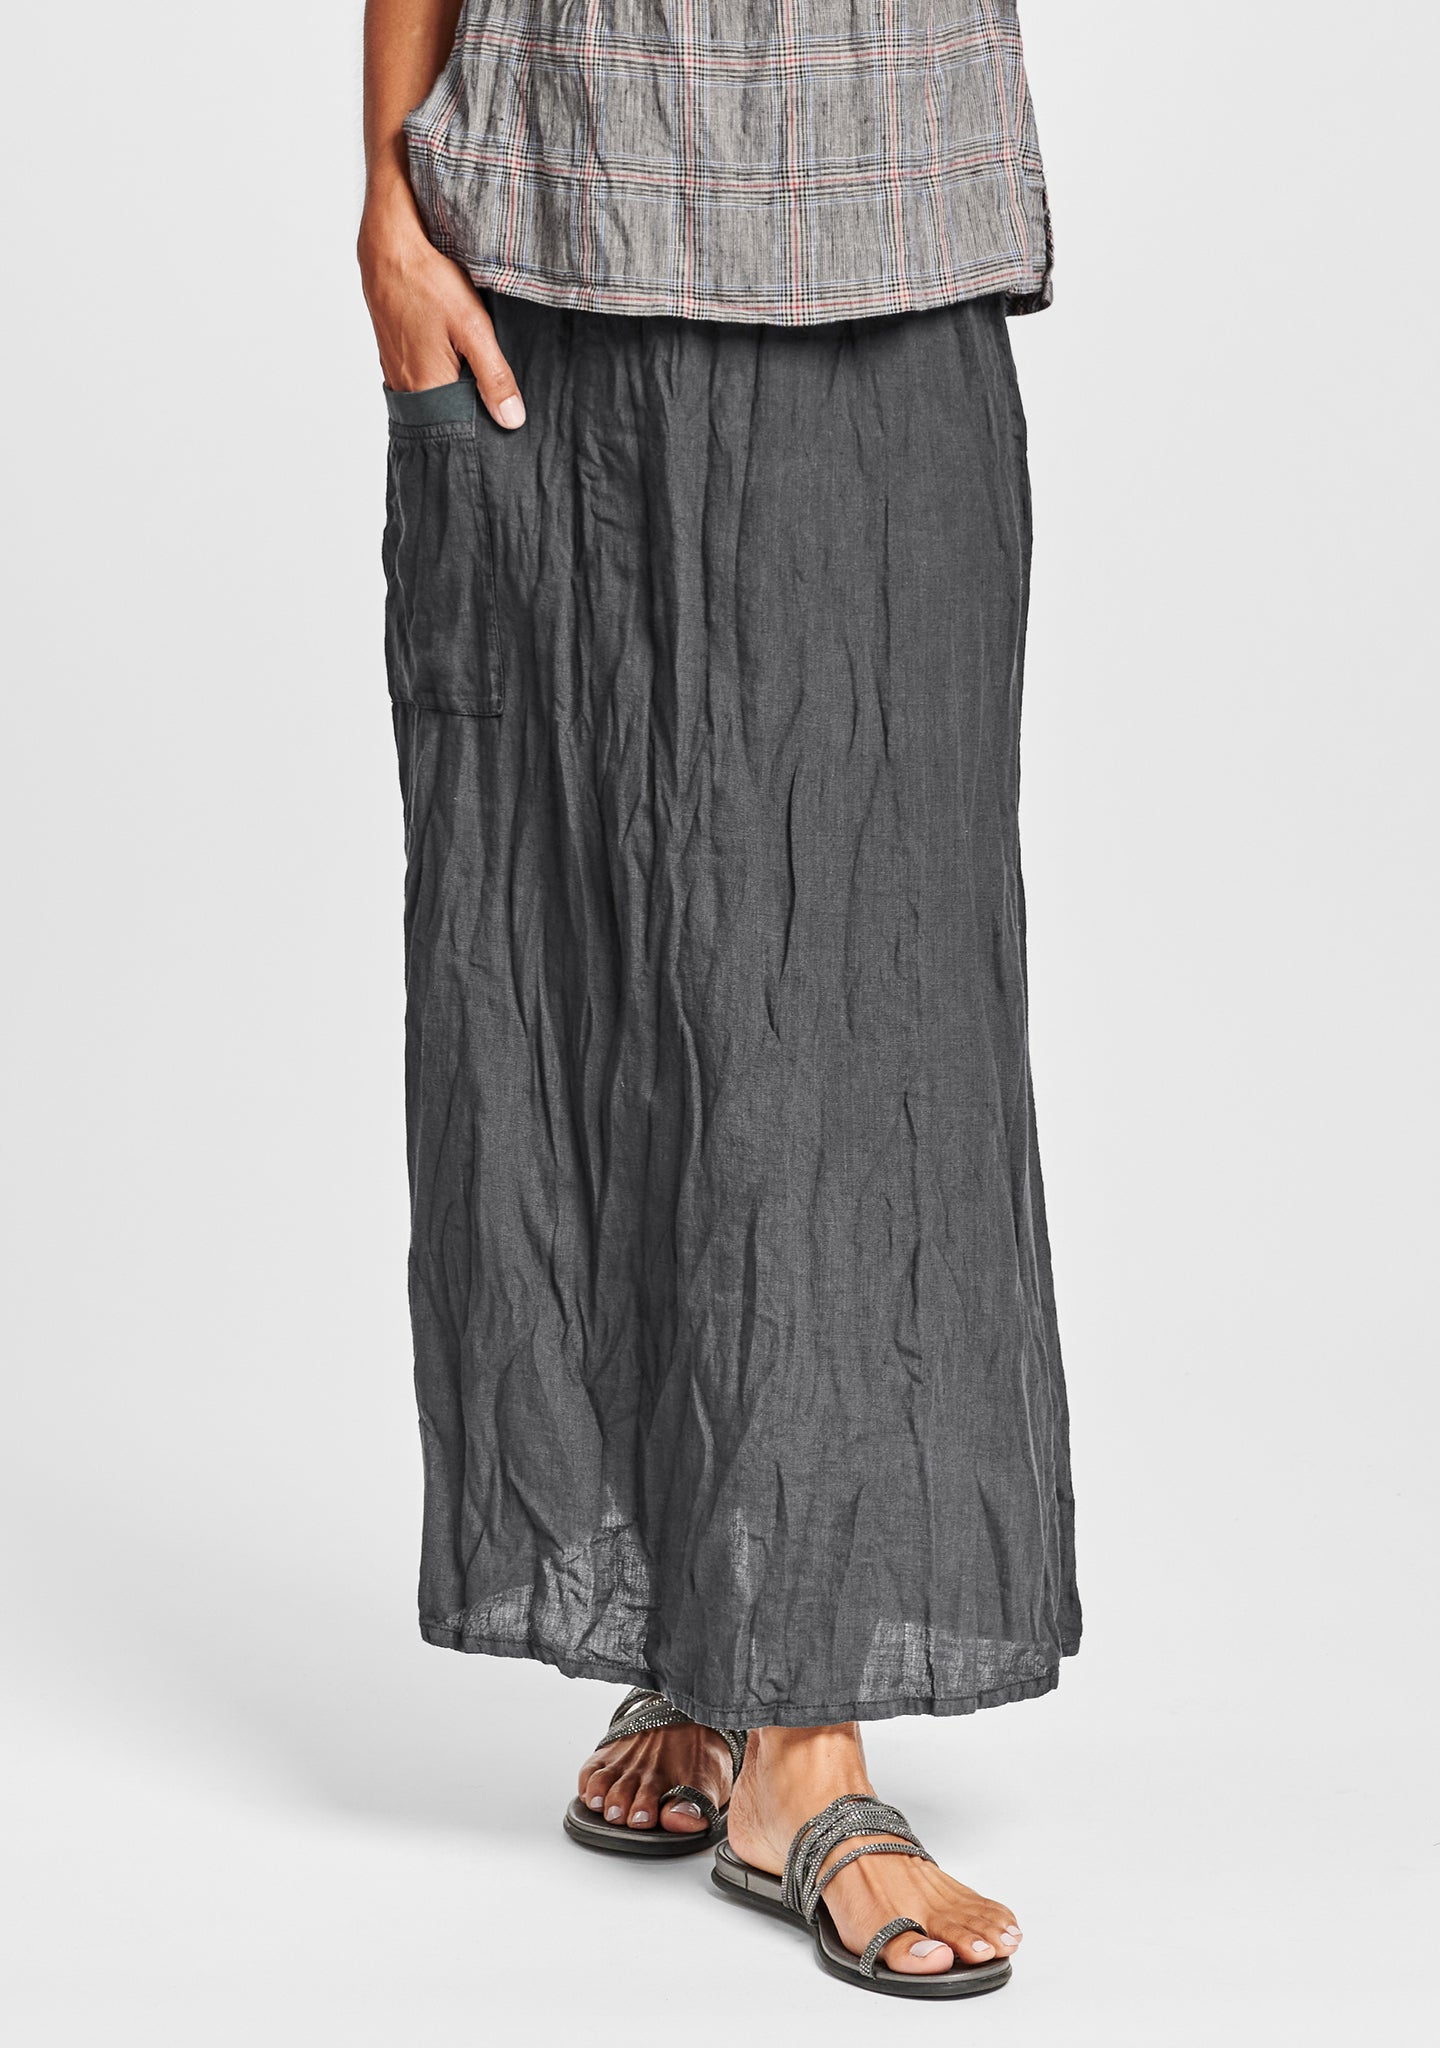 south side skirt linen maxi skirt black